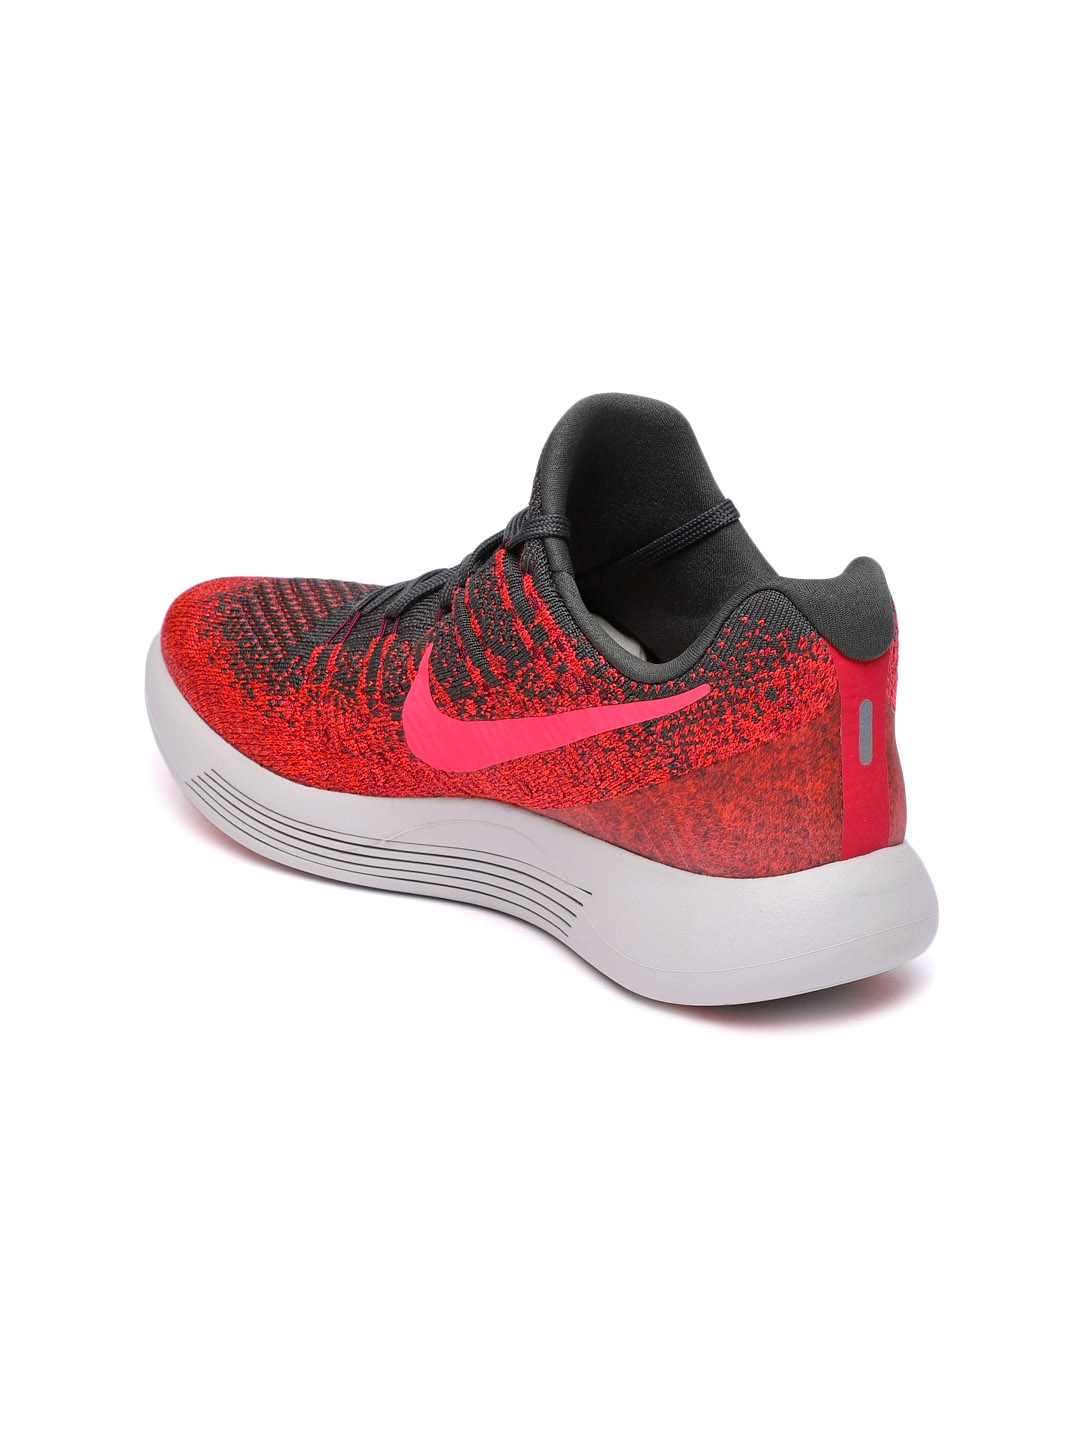 c4d2fdbe4ab5 Buy Nike Women Red   Black LunarEpic Low Flyknit 2 Running Shoes ...